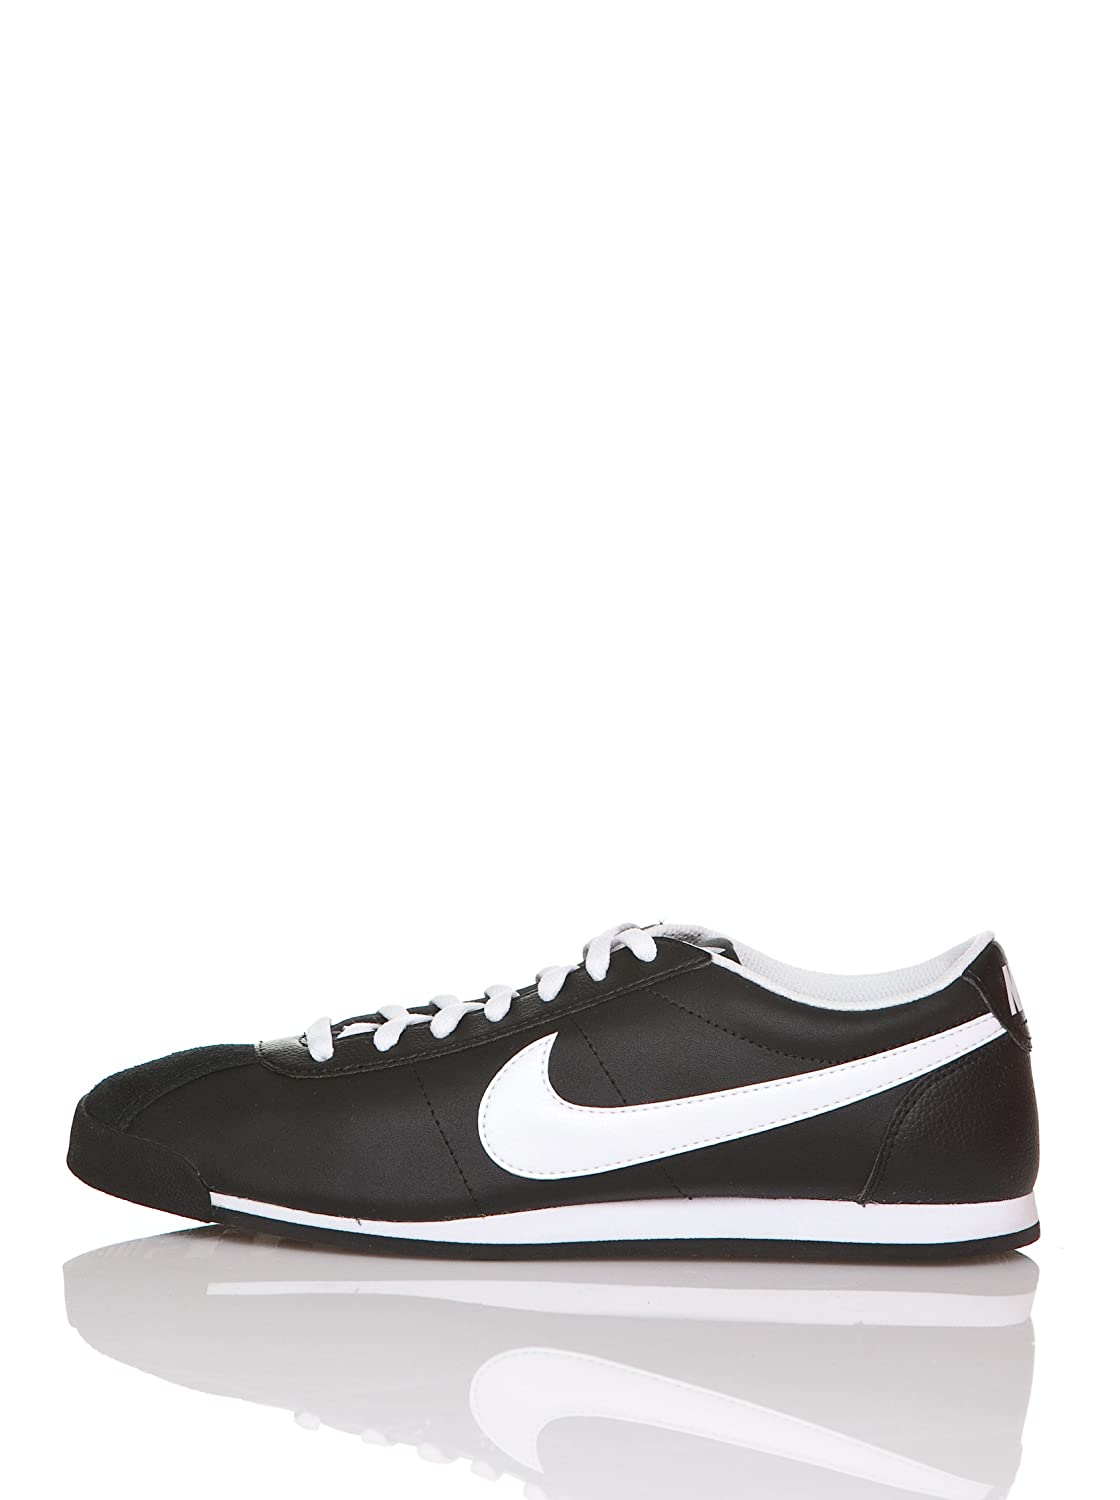 Nike Zapatillas Casual Riviera Leather Negro EU 43 (US 9.5): Amazon.es: Zapatos y complementos